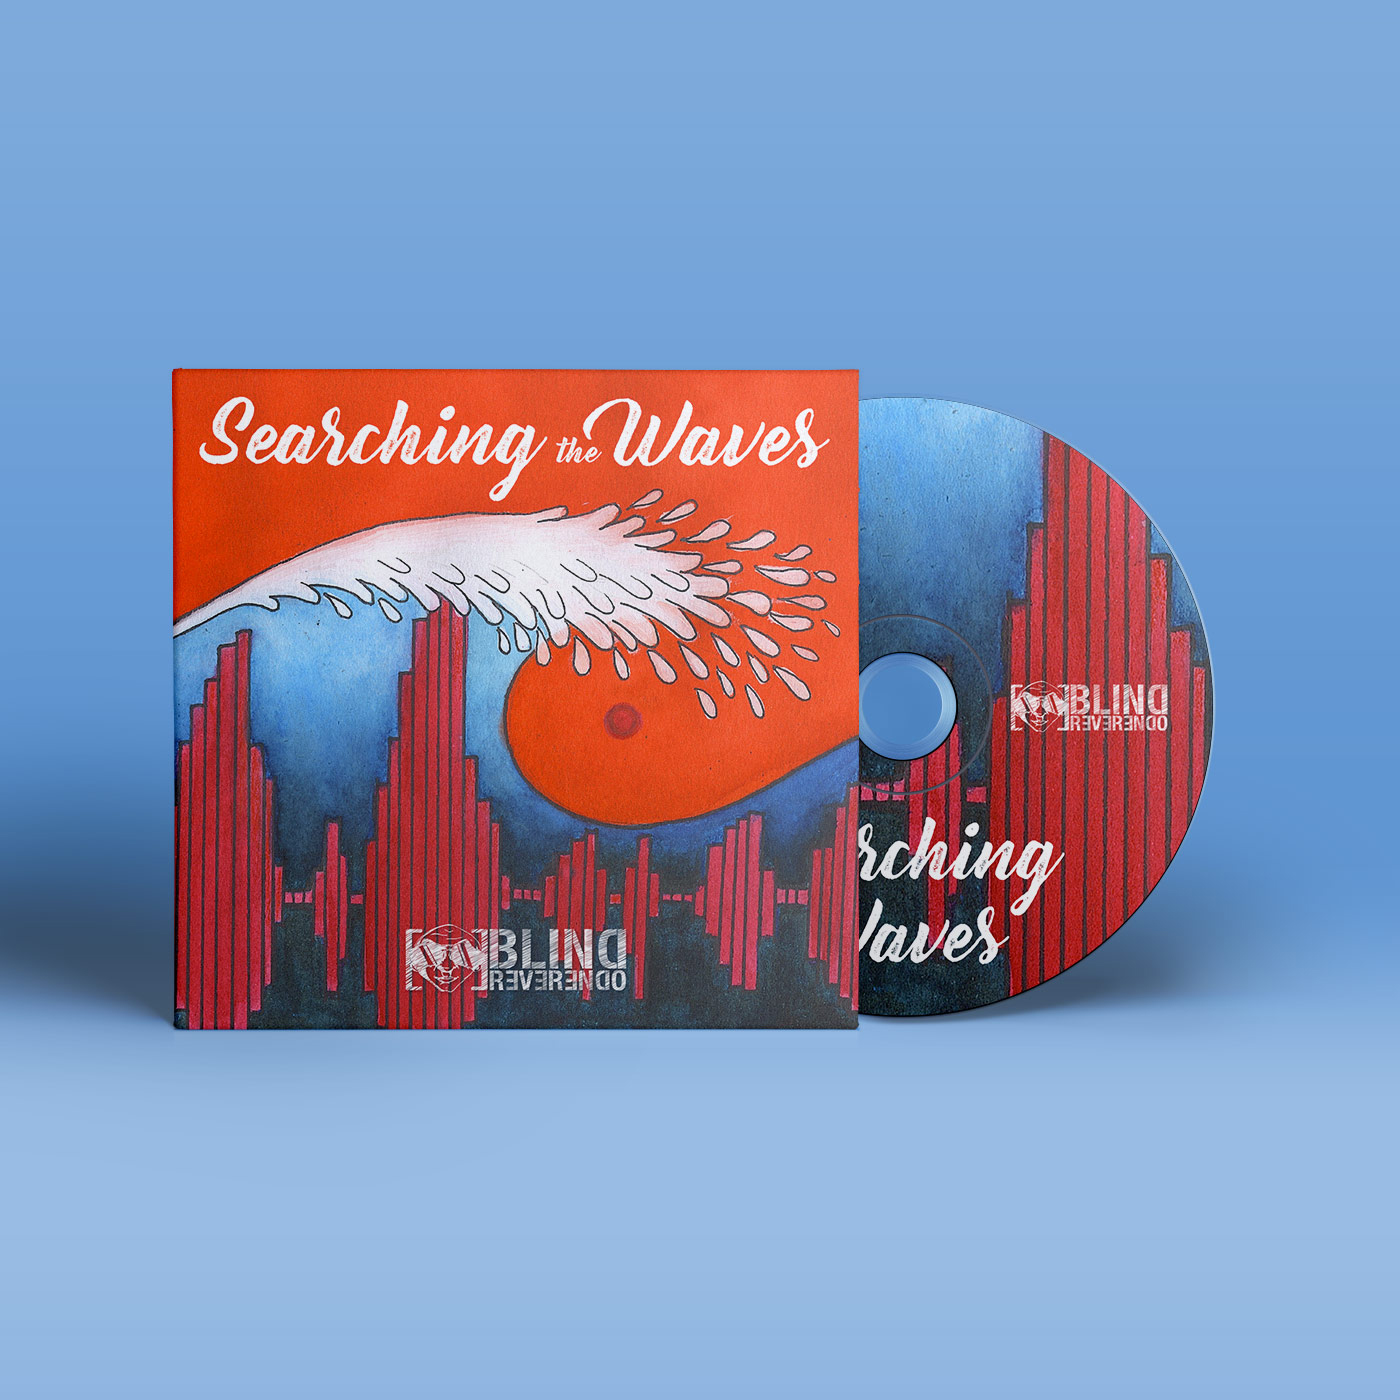 custodia-cd-searching-the-waves-di-blind-reverendo